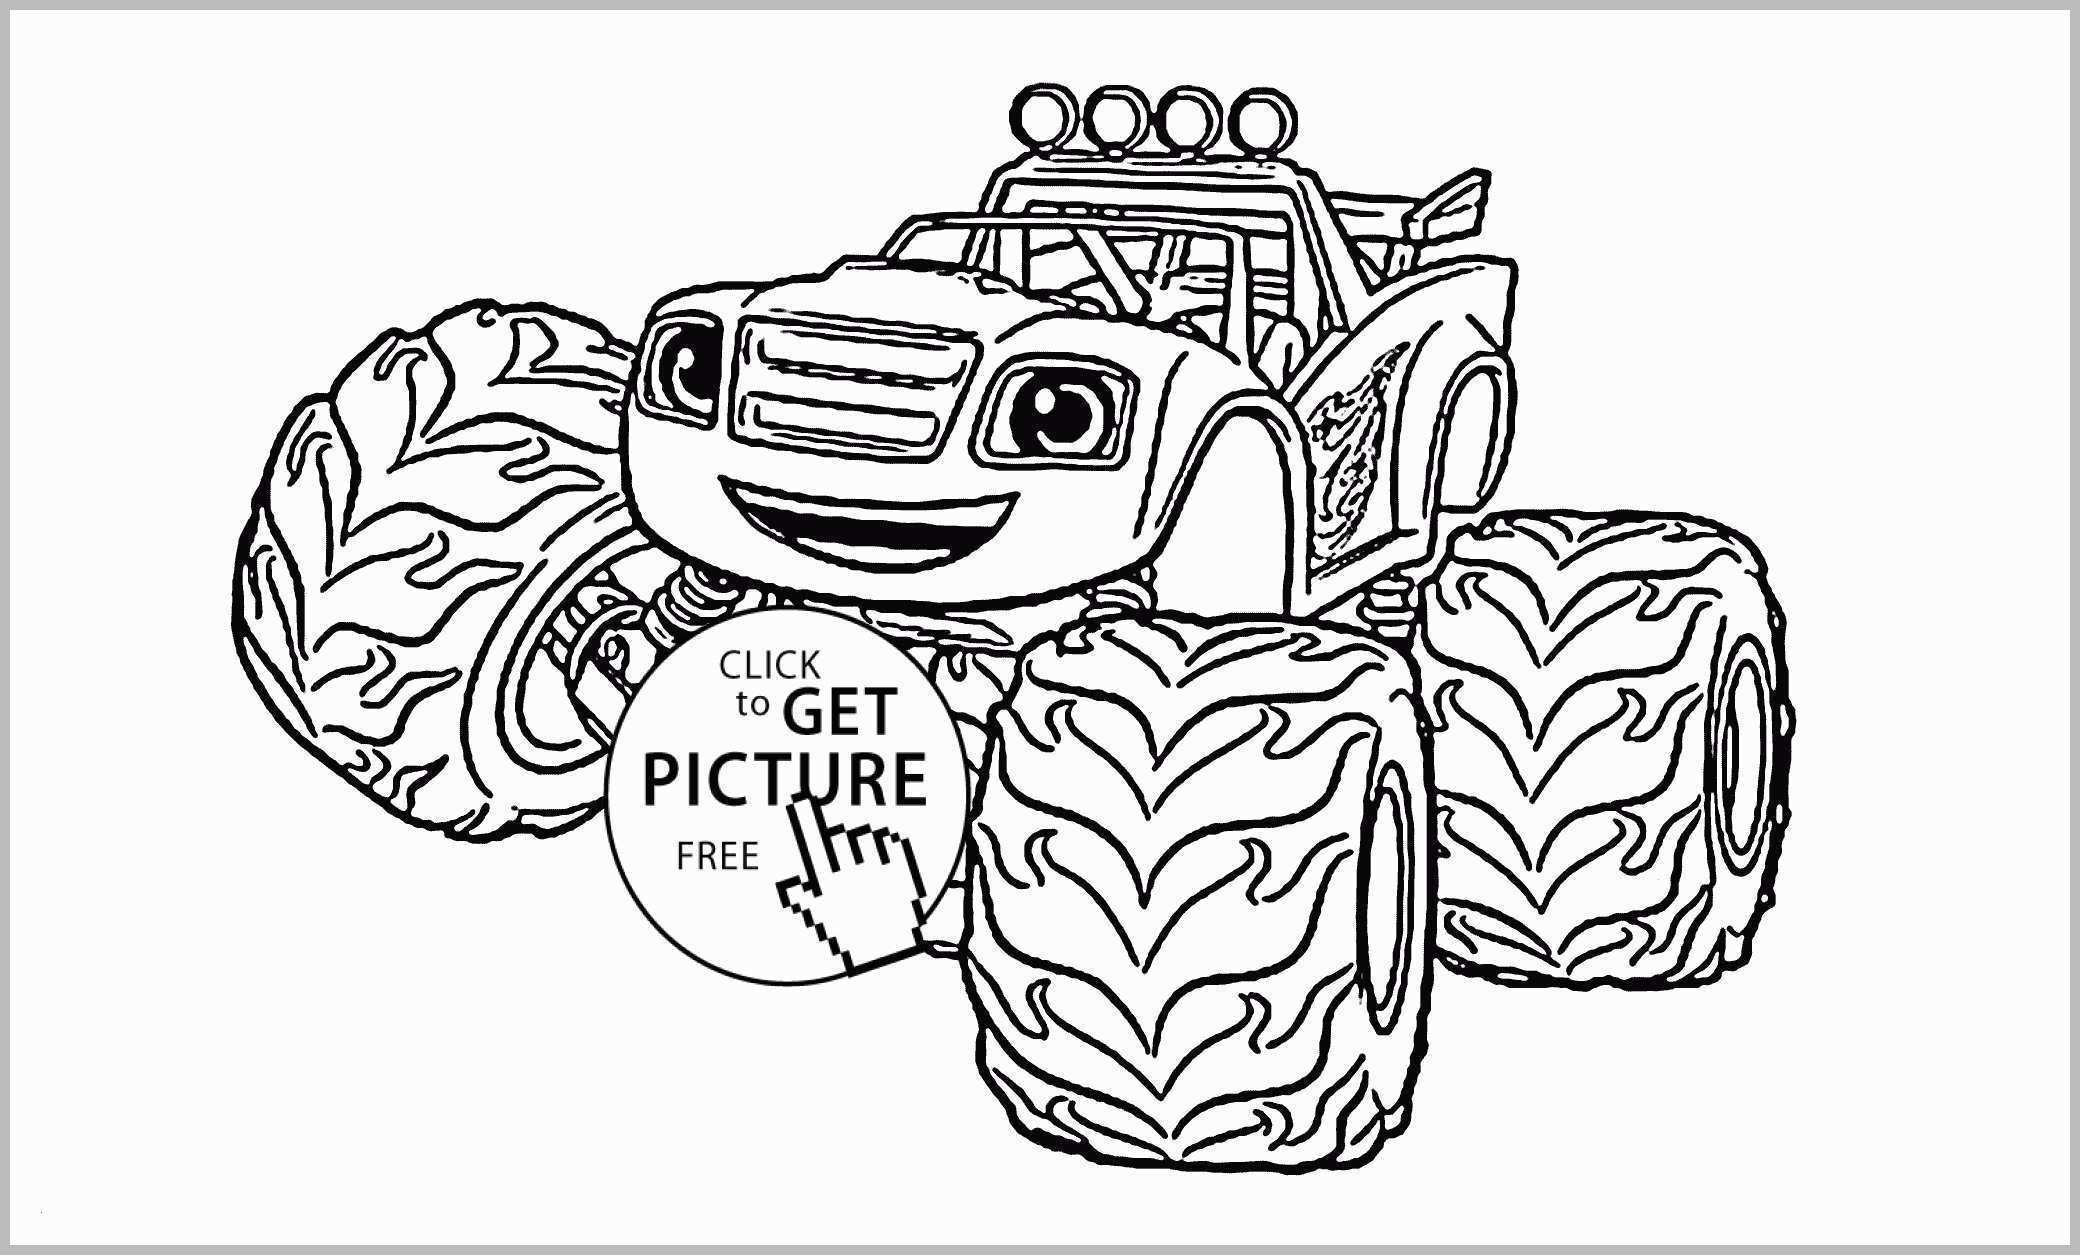 Blaze Coloring Pages 58 New Free Printable Blaze Coloring Pages Brainstormchi